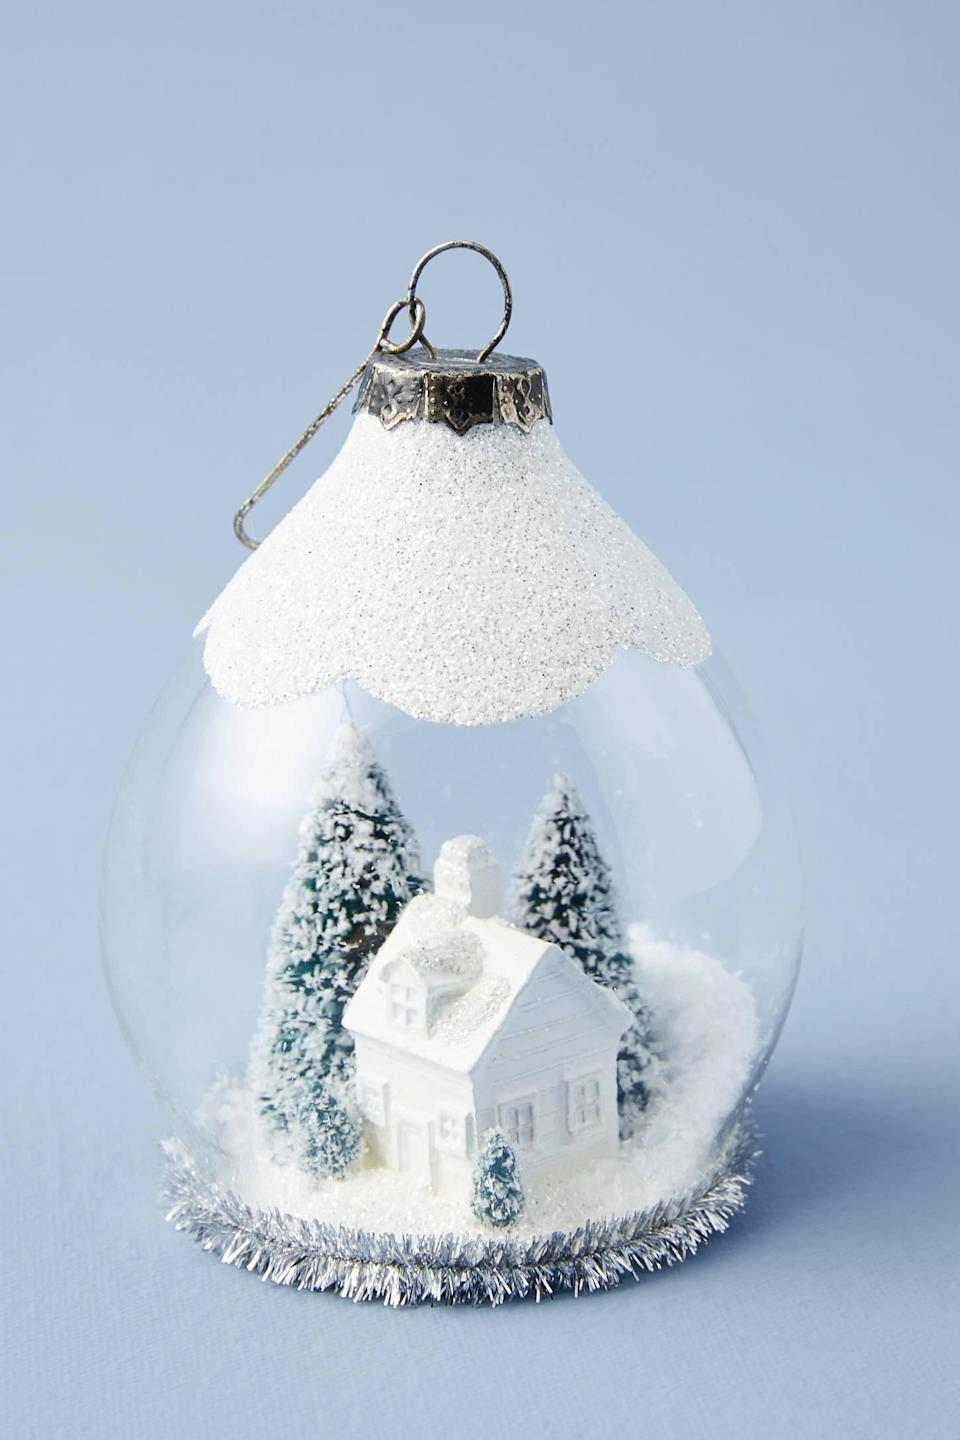 """<p>Showcase a snowy Winter day with the <a href=""""https://www.popsugar.com/buy/Snow-Globe-Blizzard-Ornament-490534?p_name=Snow%20Globe%20Blizzard%20Ornament&retailer=anthropologie.com&pid=490534&price=24&evar1=casa%3Aus&evar9=46615300&evar98=https%3A%2F%2Fwww.popsugar.com%2Fhome%2Fphoto-gallery%2F46615300%2Fimage%2F46615405%2FSnow-Globe-Blizzard-Ornament&list1=shopping%2Canthropologie%2Choliday%2Cchristmas%2Cchristmas%20decorations%2Choliday%20decor%2Chome%20shopping&prop13=mobile&pdata=1"""" rel=""""nofollow noopener"""" class=""""link rapid-noclick-resp"""" target=""""_blank"""" data-ylk=""""slk:Snow Globe Blizzard Ornament"""">Snow Globe Blizzard Ornament</a> ($24).</p>"""